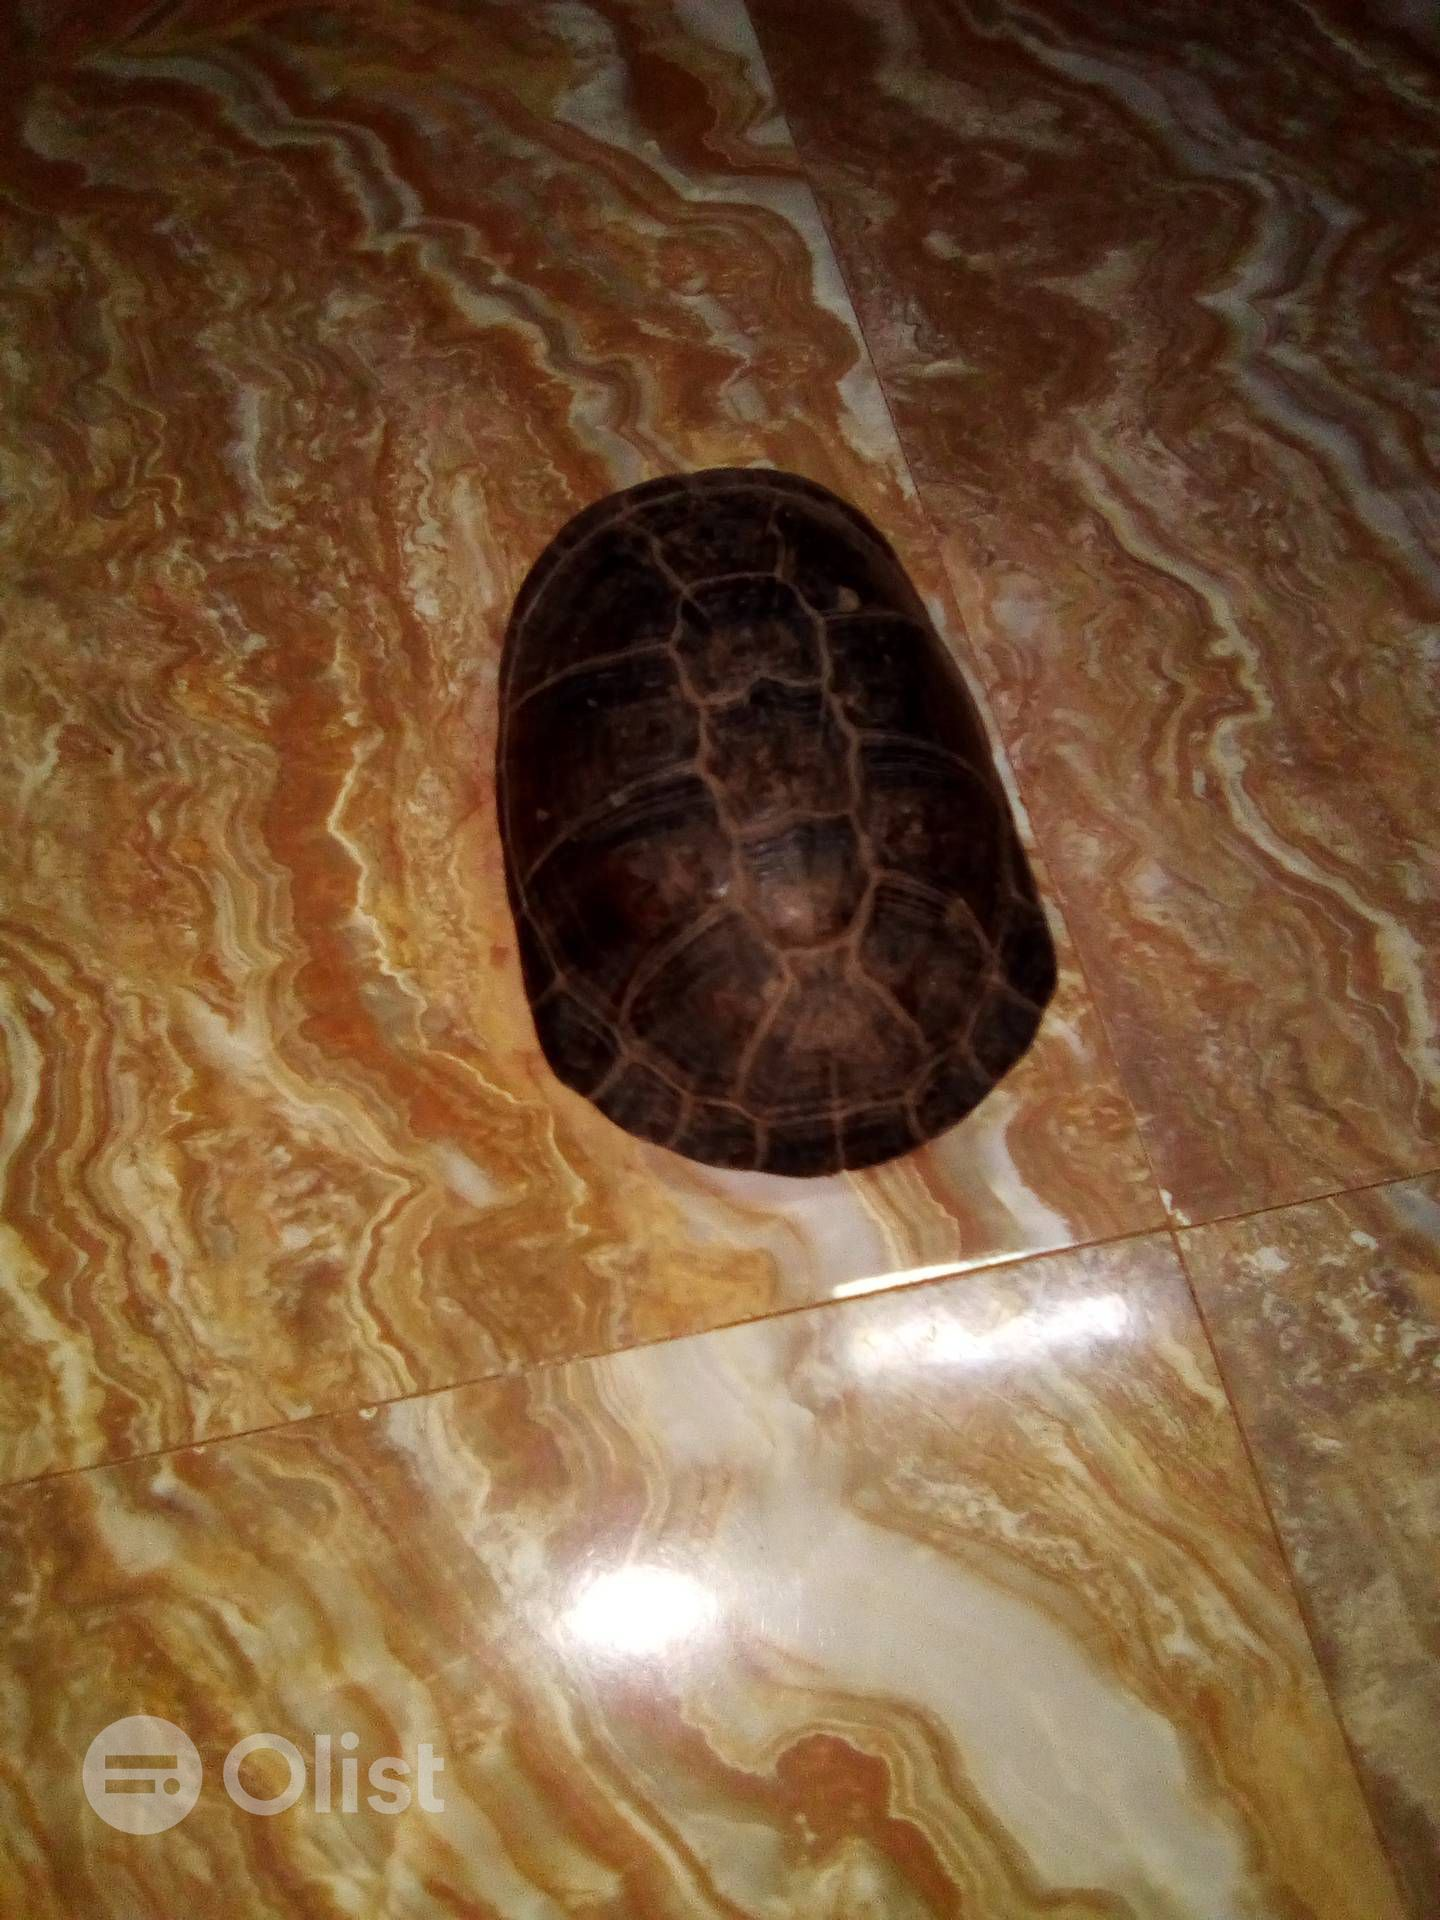 Tortoise up for grabs